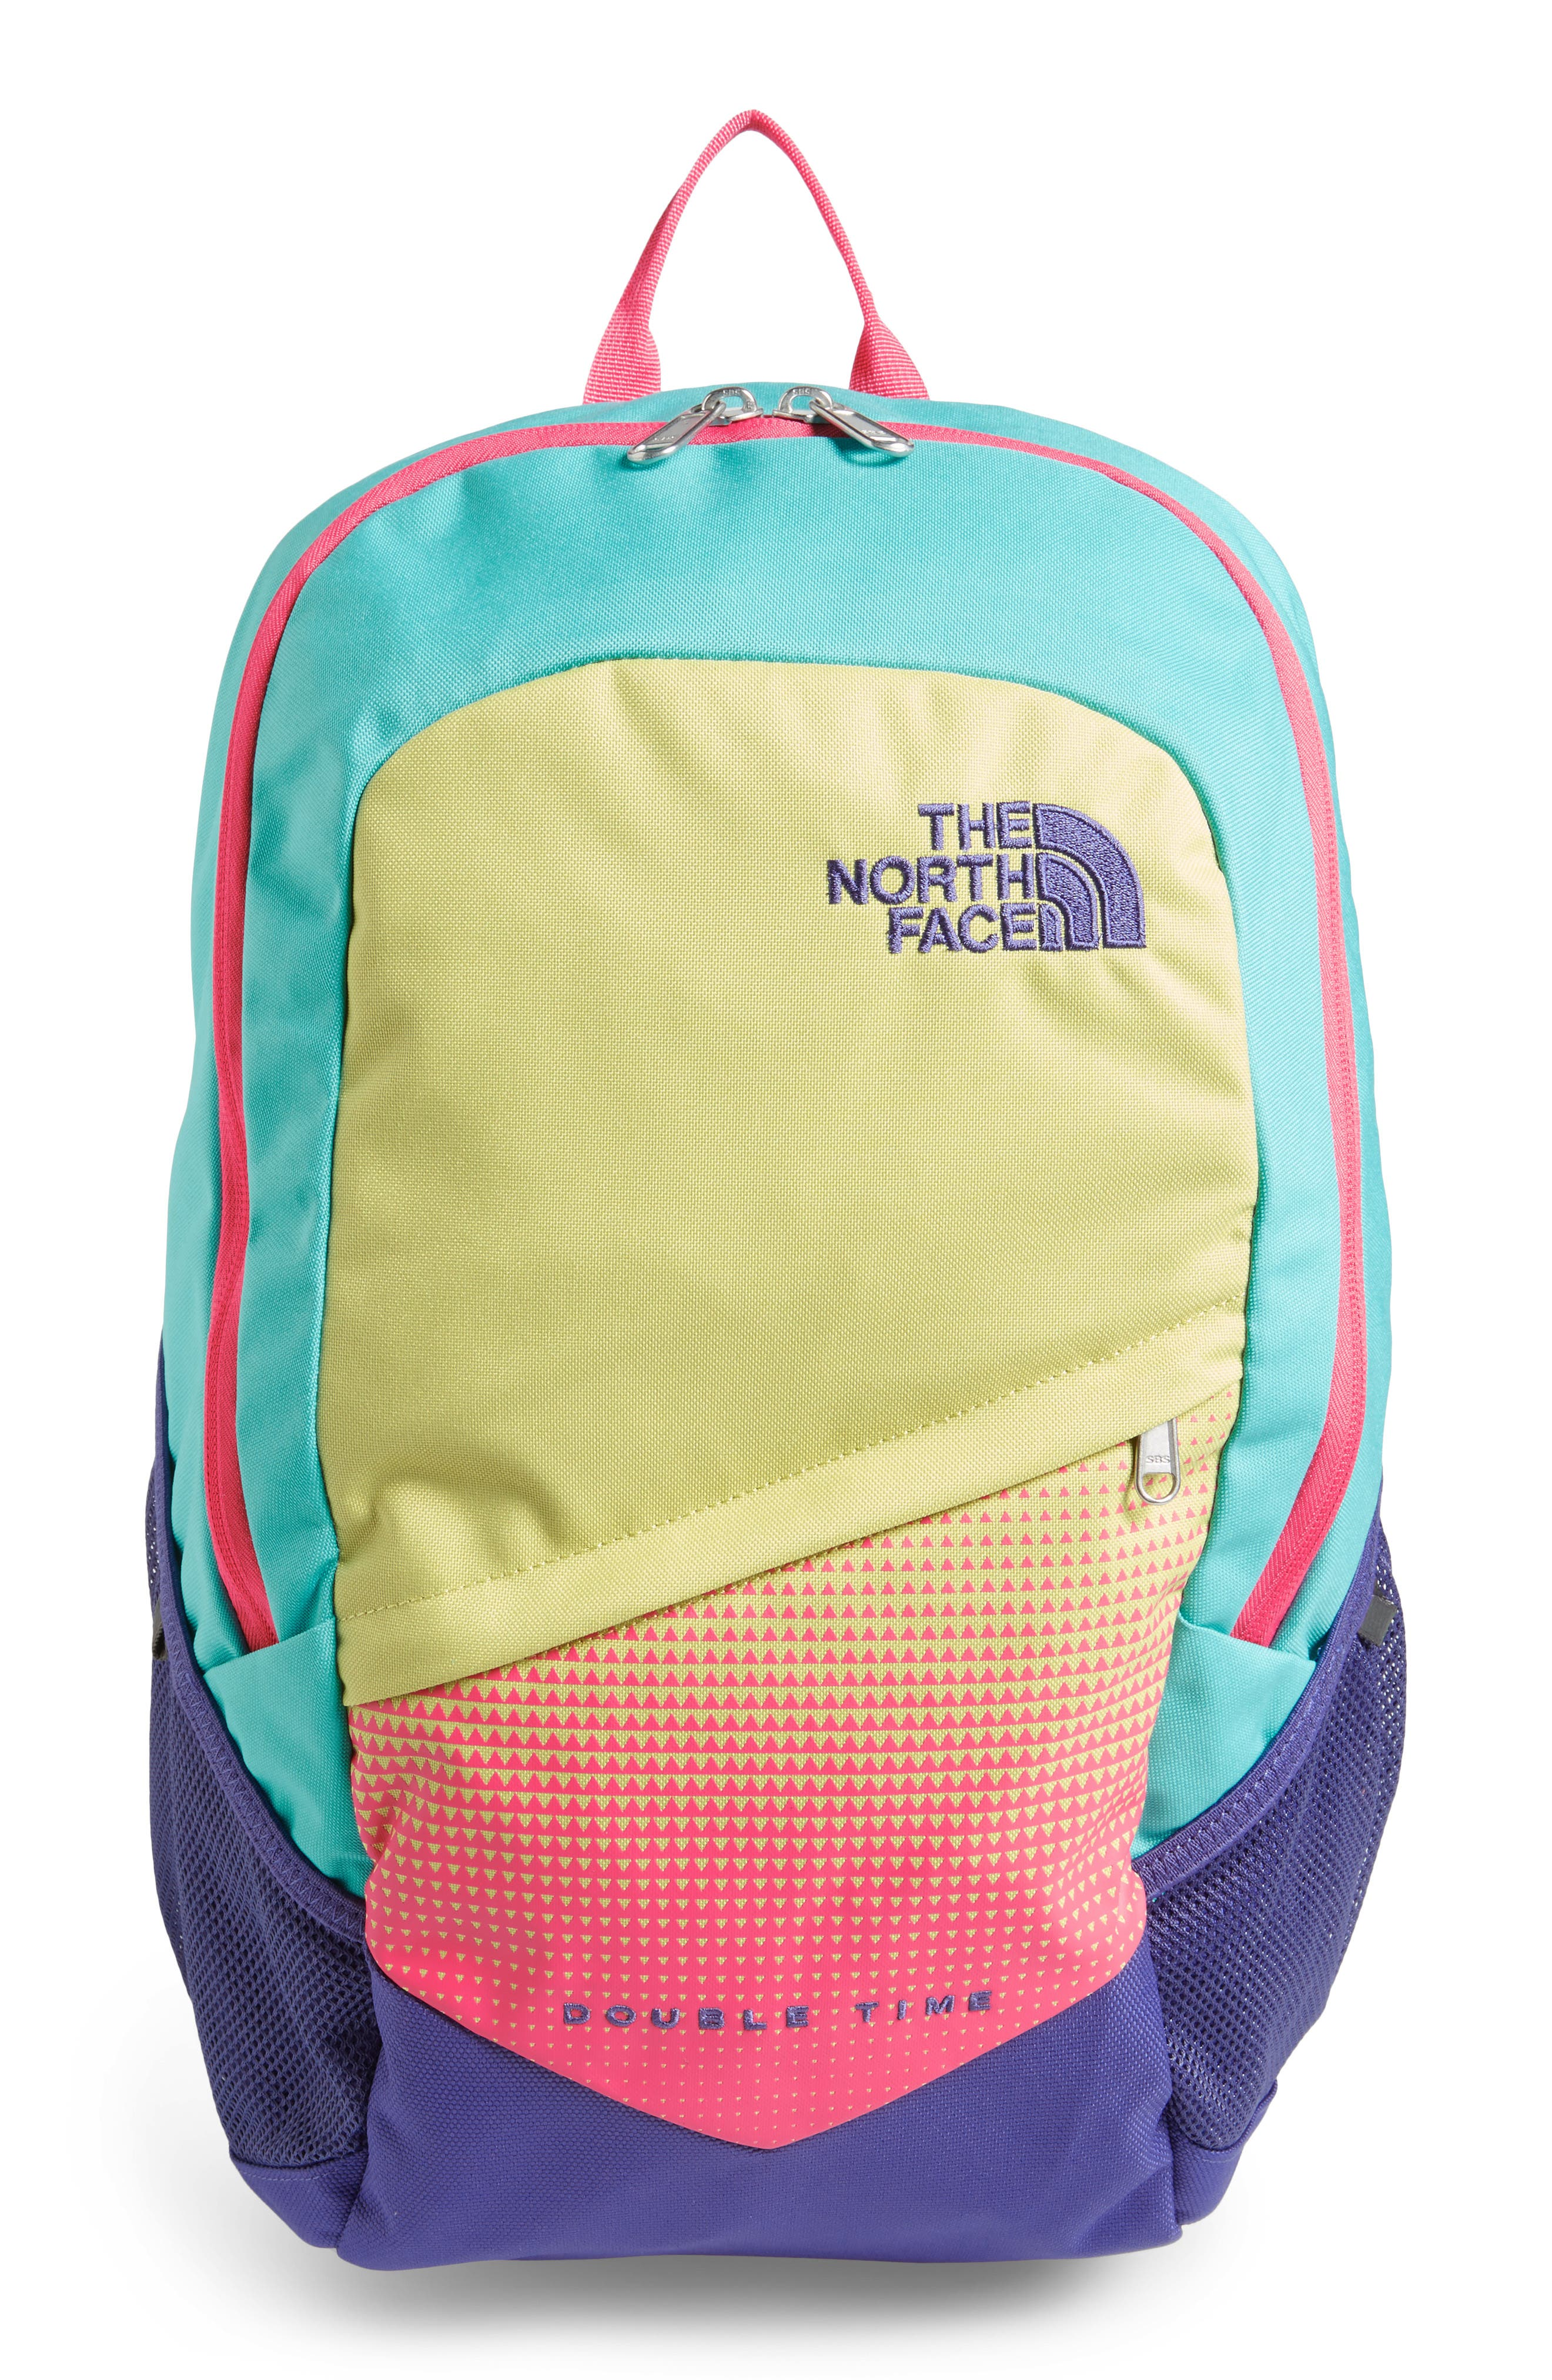 The North Face 'Double Time' Backpack (Kids)